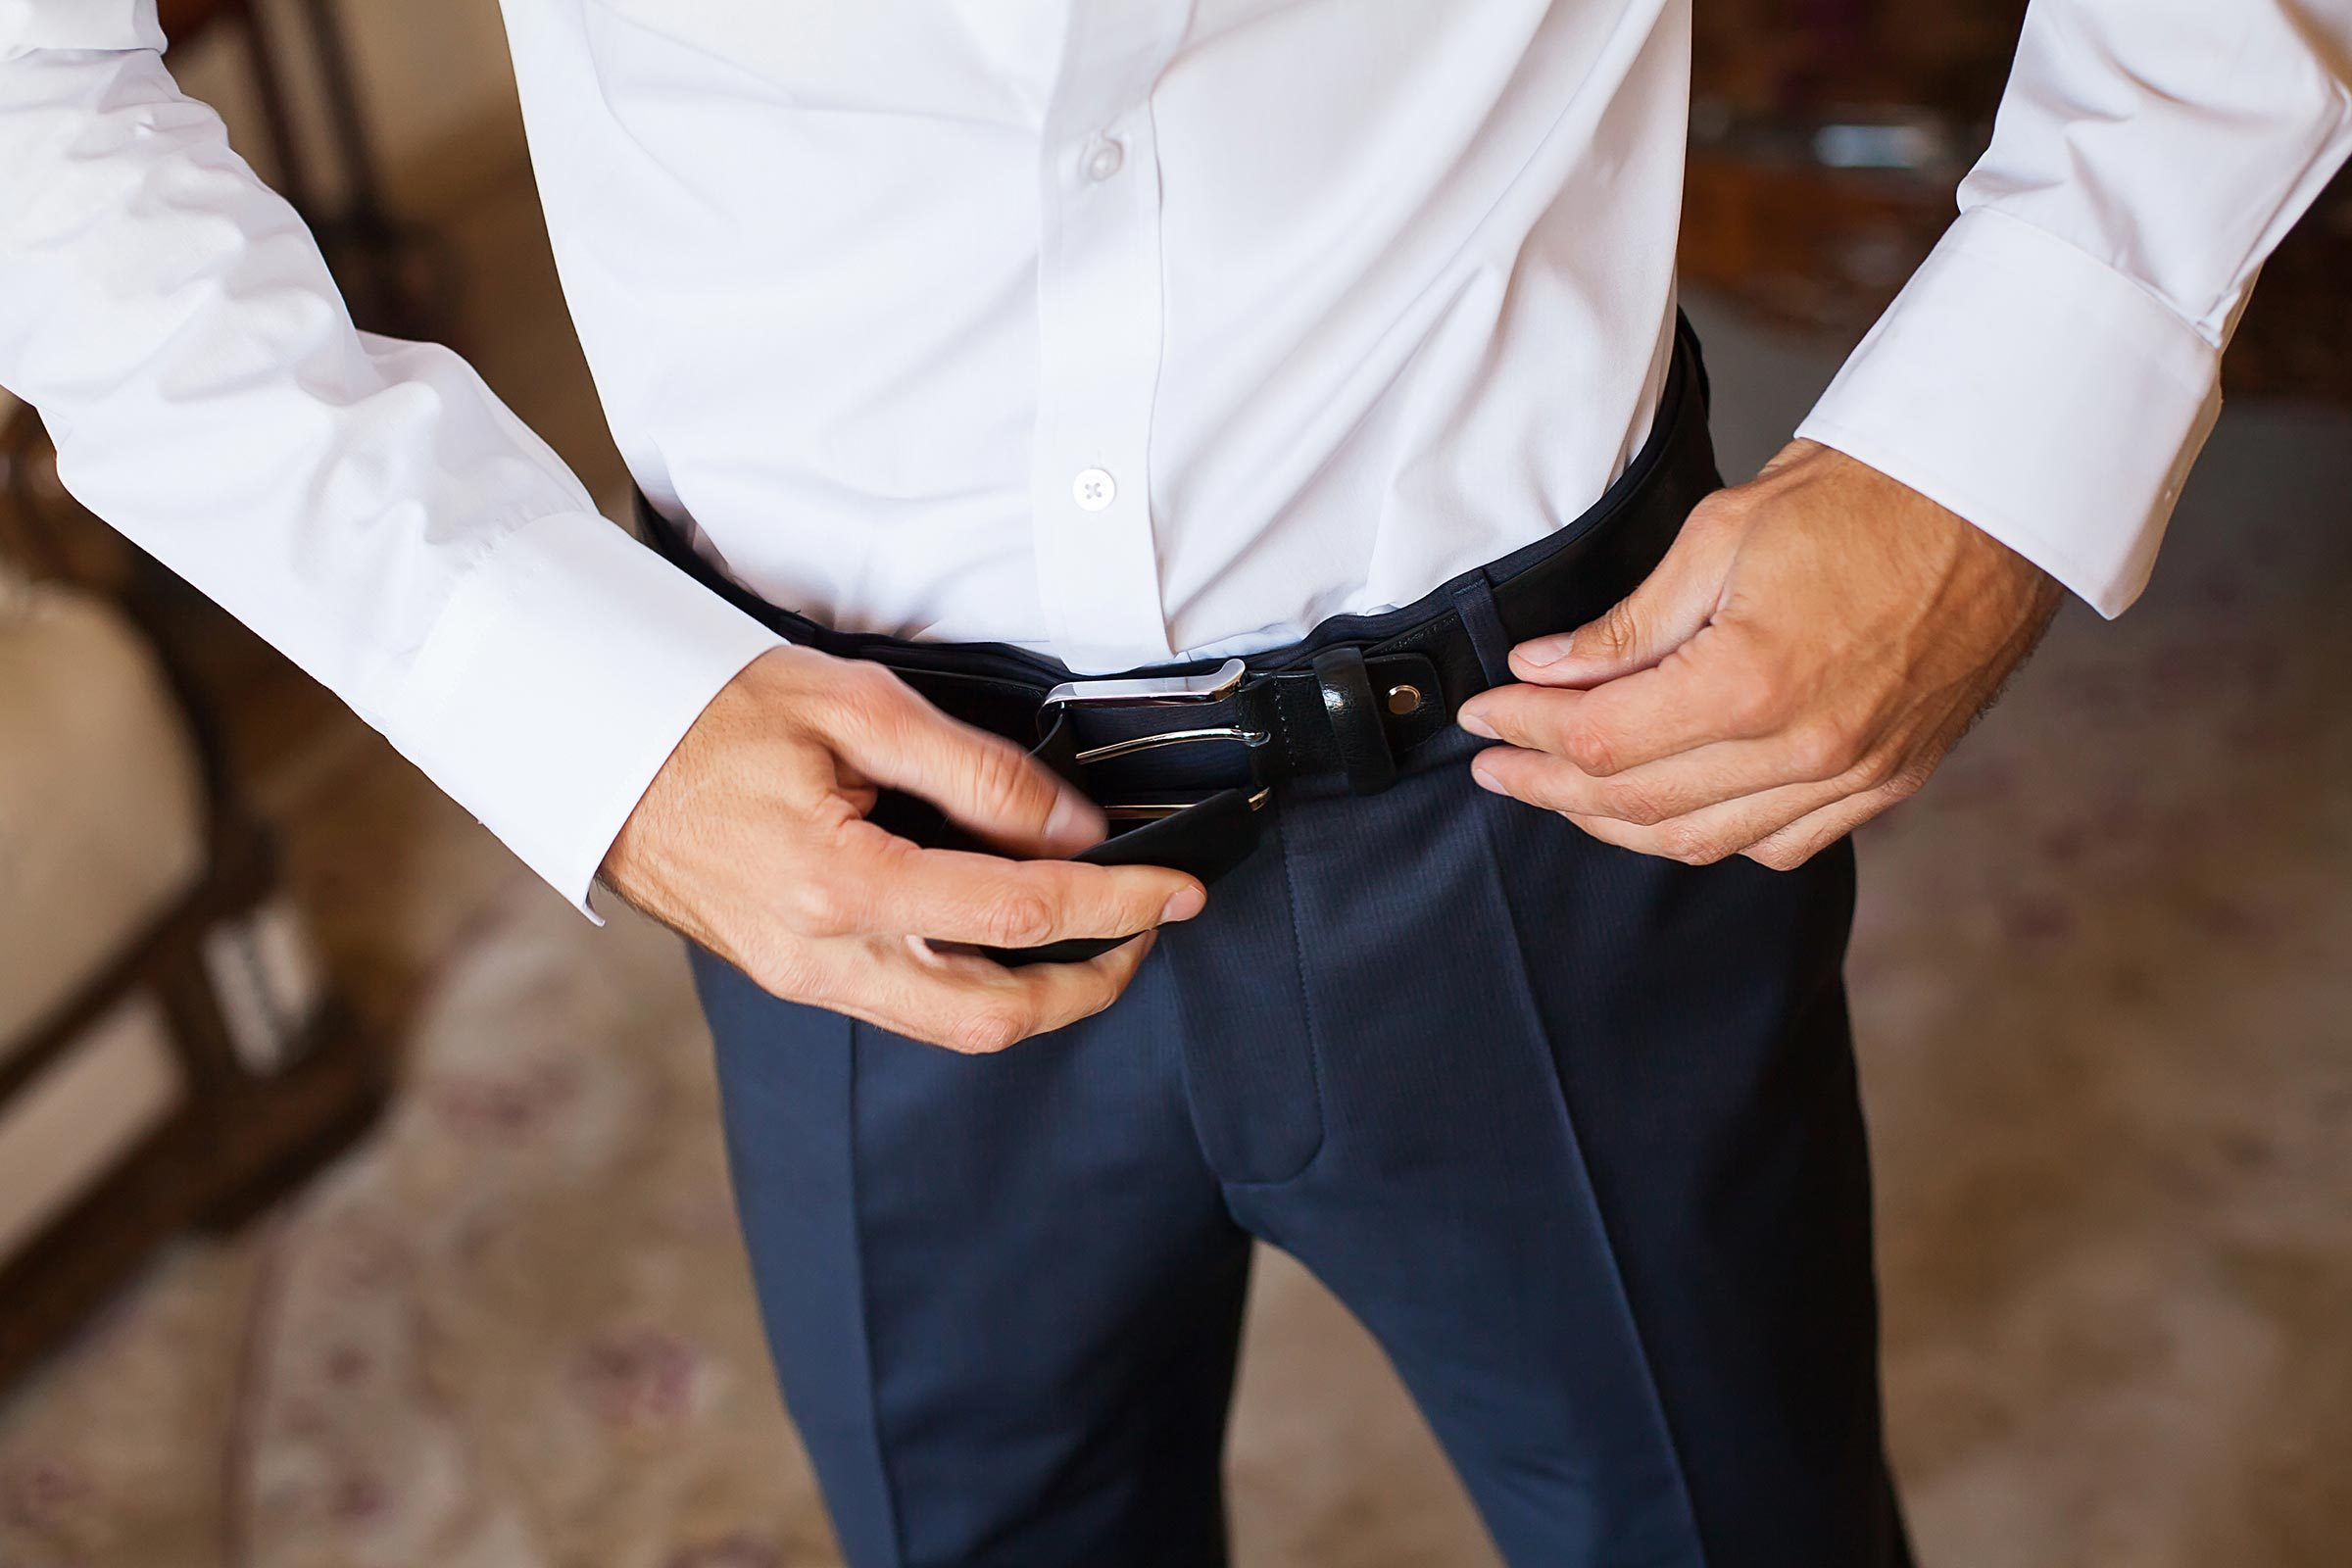 man tightening his belt